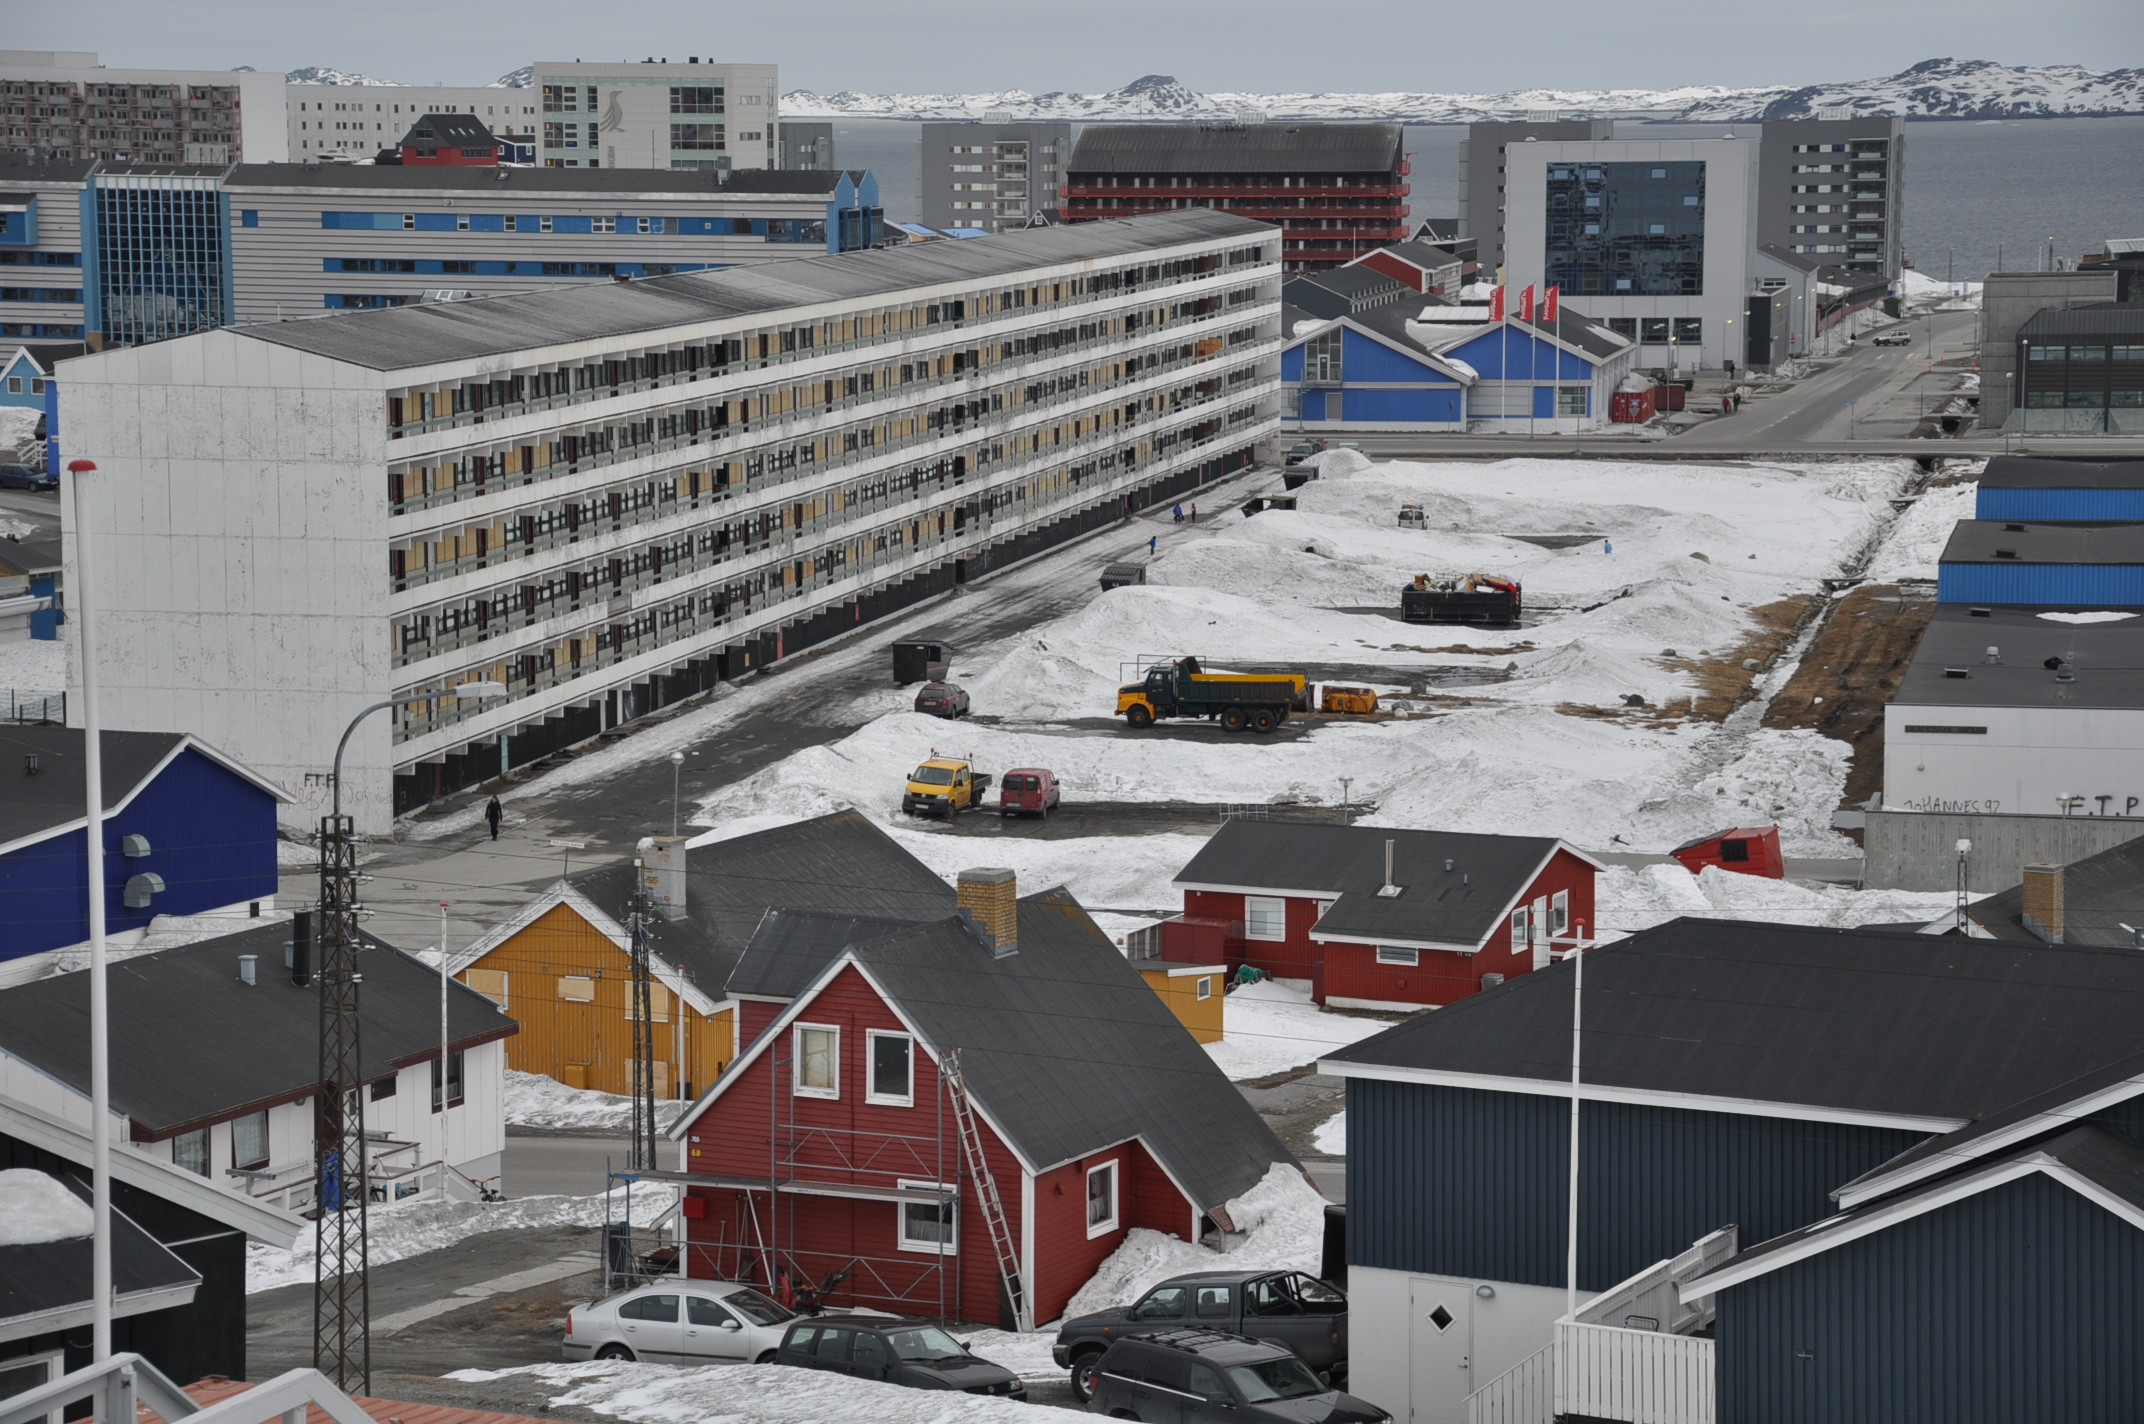 File:Greenland 13, Nuuk, town centre with Blok P.JPG - Wikimediagreenland town